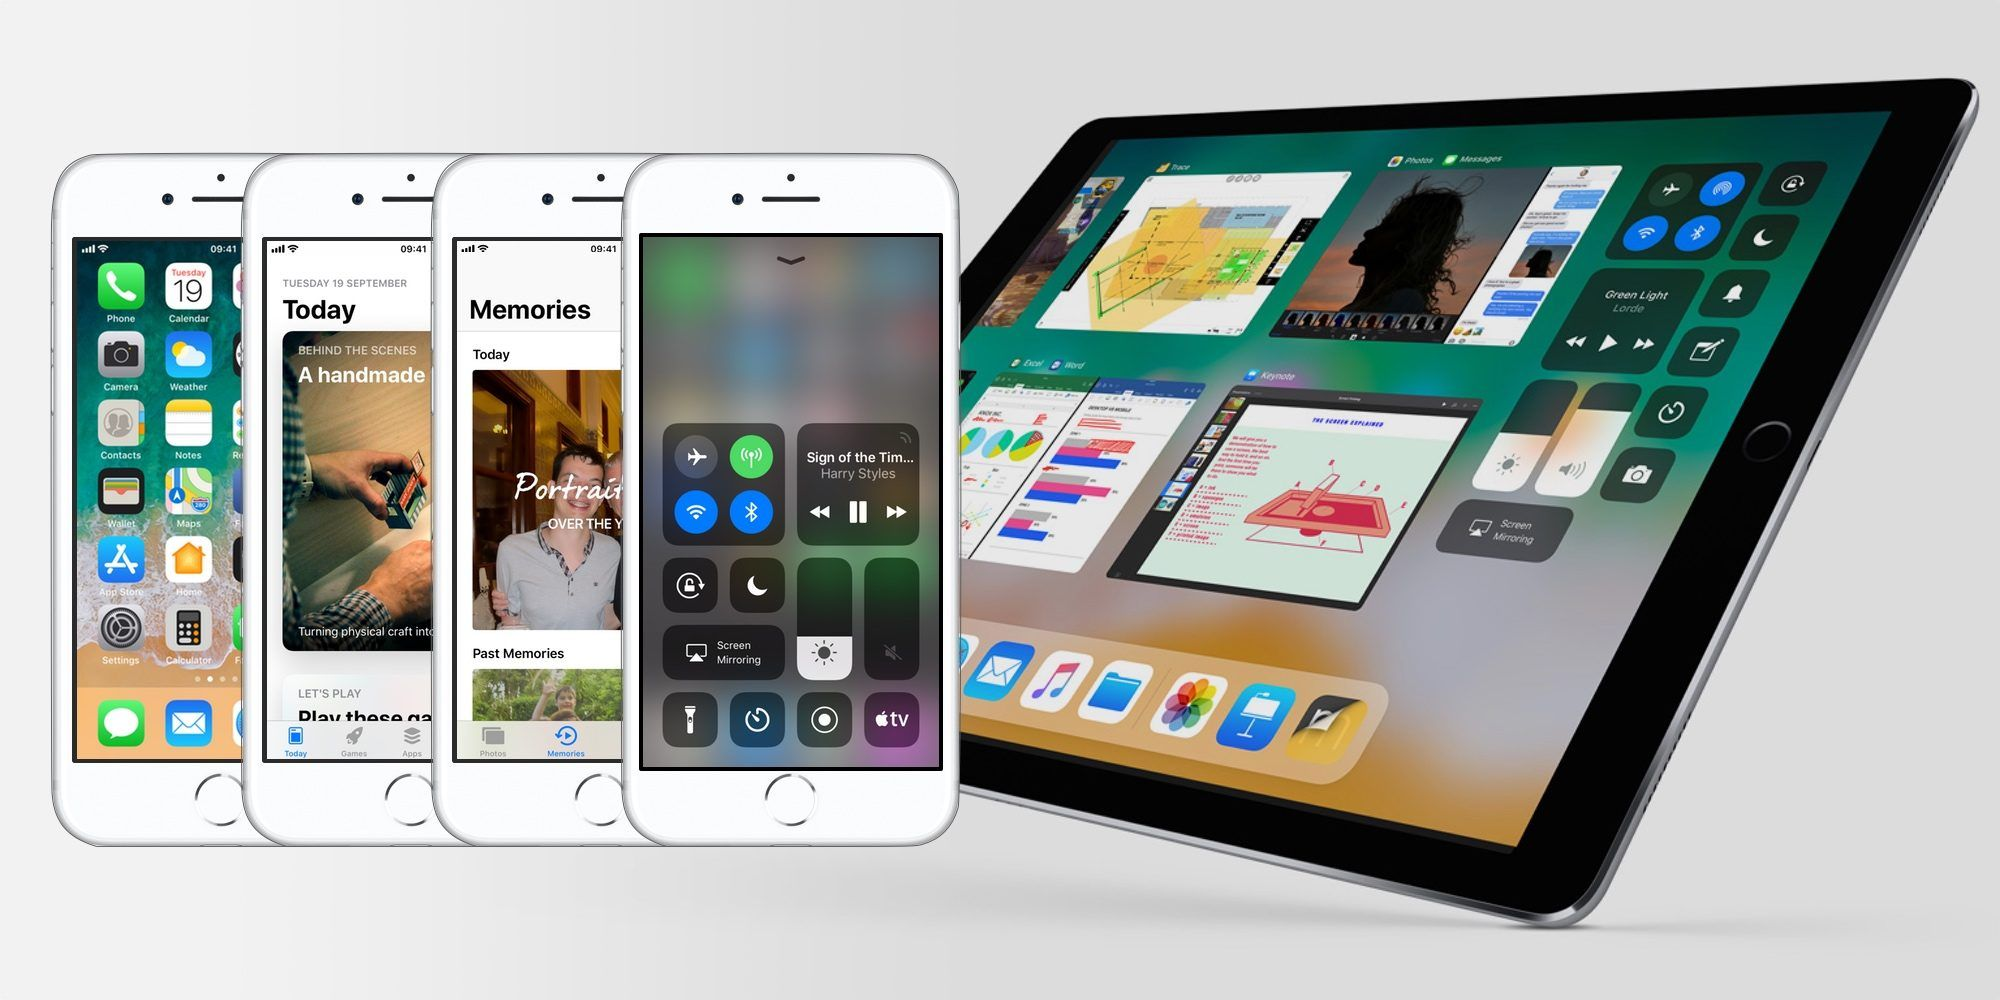 114a570e6db @9to5mac : Apple releases iOS 11.0.1 software update for iPhone and iPad  https